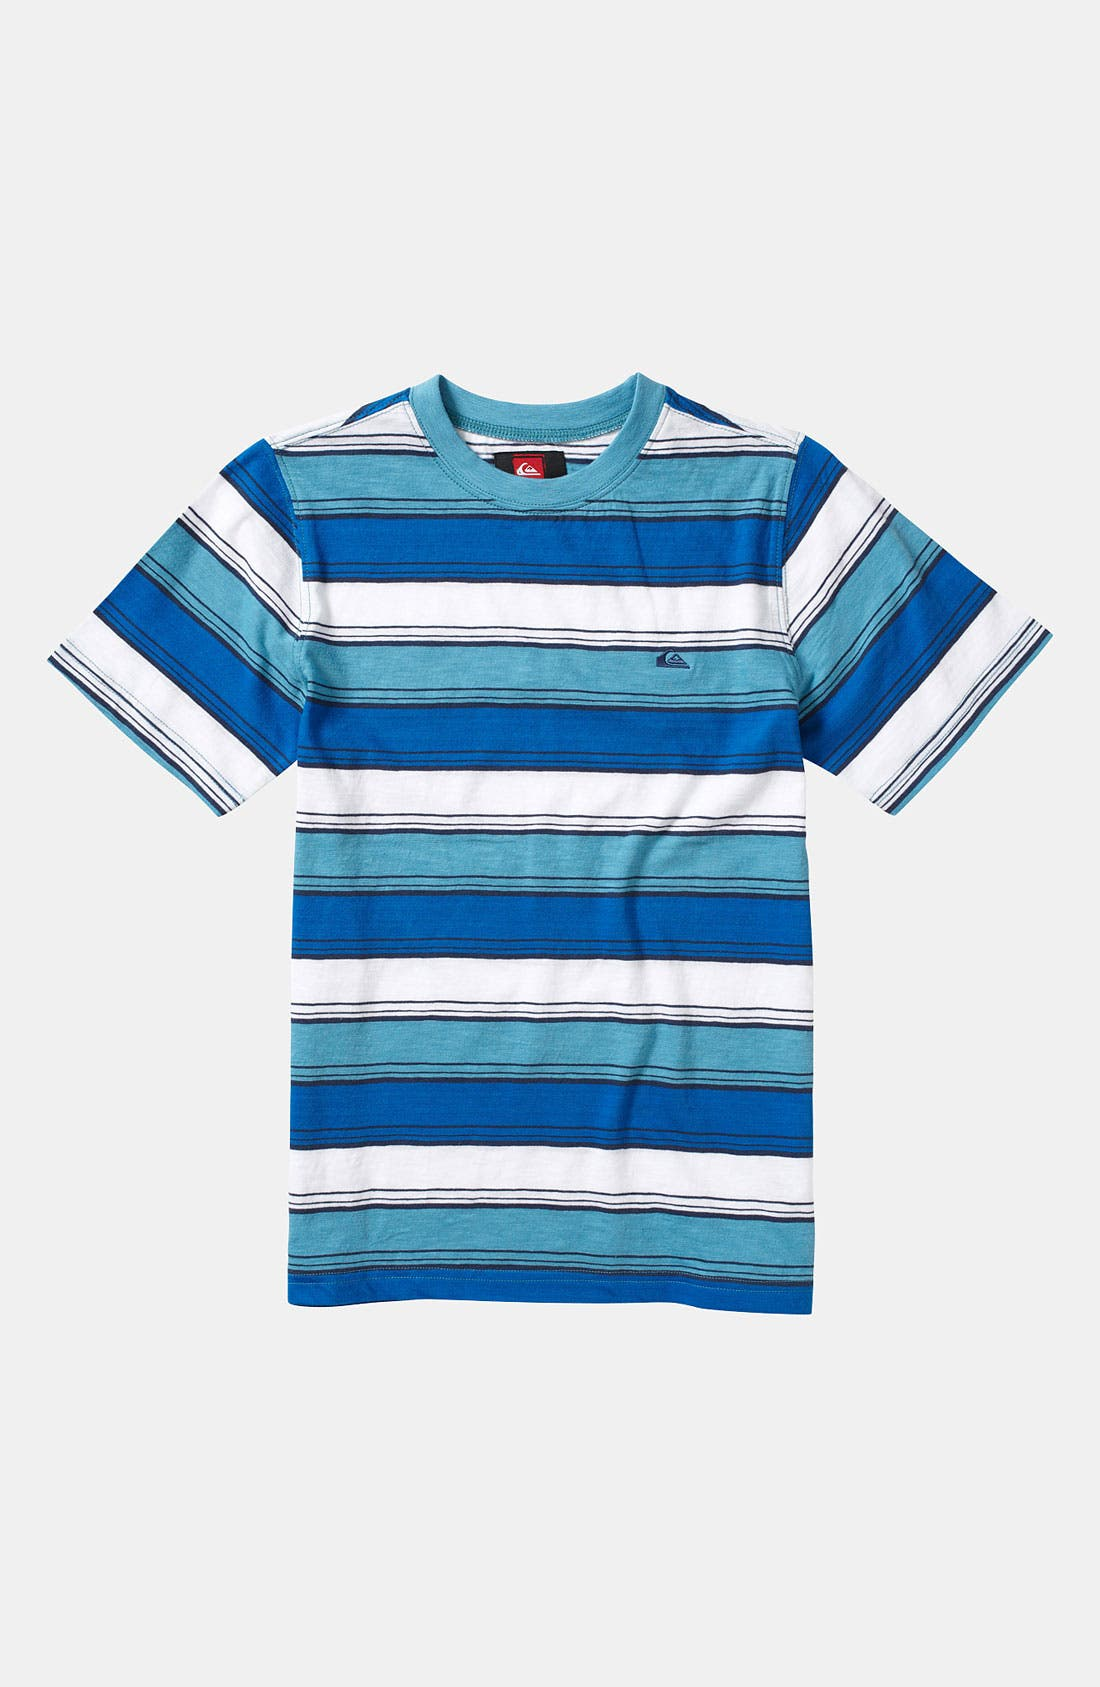 Main Image - Quiksilver 'Downside' Stripe Shirt (Toddler)